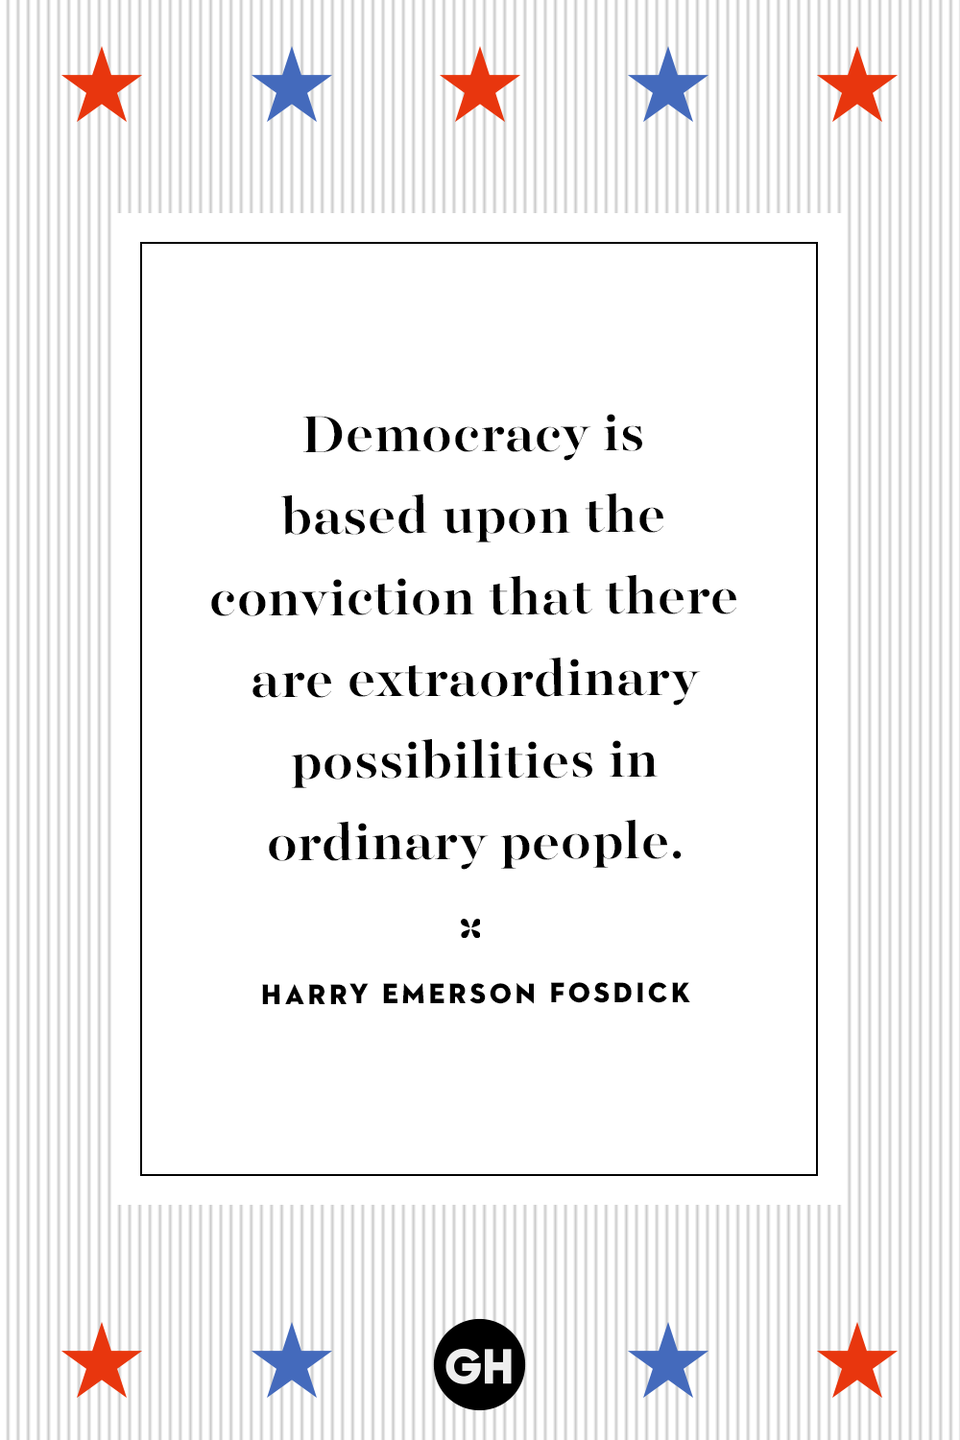 """<p>Democracy is based upon the conviction that there are extraordinary possibilities in ordinary people.</p><p><strong>RELATED: </strong><a href=""""https://www.goodhousekeeping.com/life/a32801724/election-stress-anxiety-relief/"""" rel=""""nofollow noopener"""" target=""""_blank"""" data-ylk=""""slk:How to Keep Your Cool When Election Season Gets Heated"""" class=""""link rapid-noclick-resp"""">How to Keep Your Cool When Election Season Gets Heated</a></p>"""